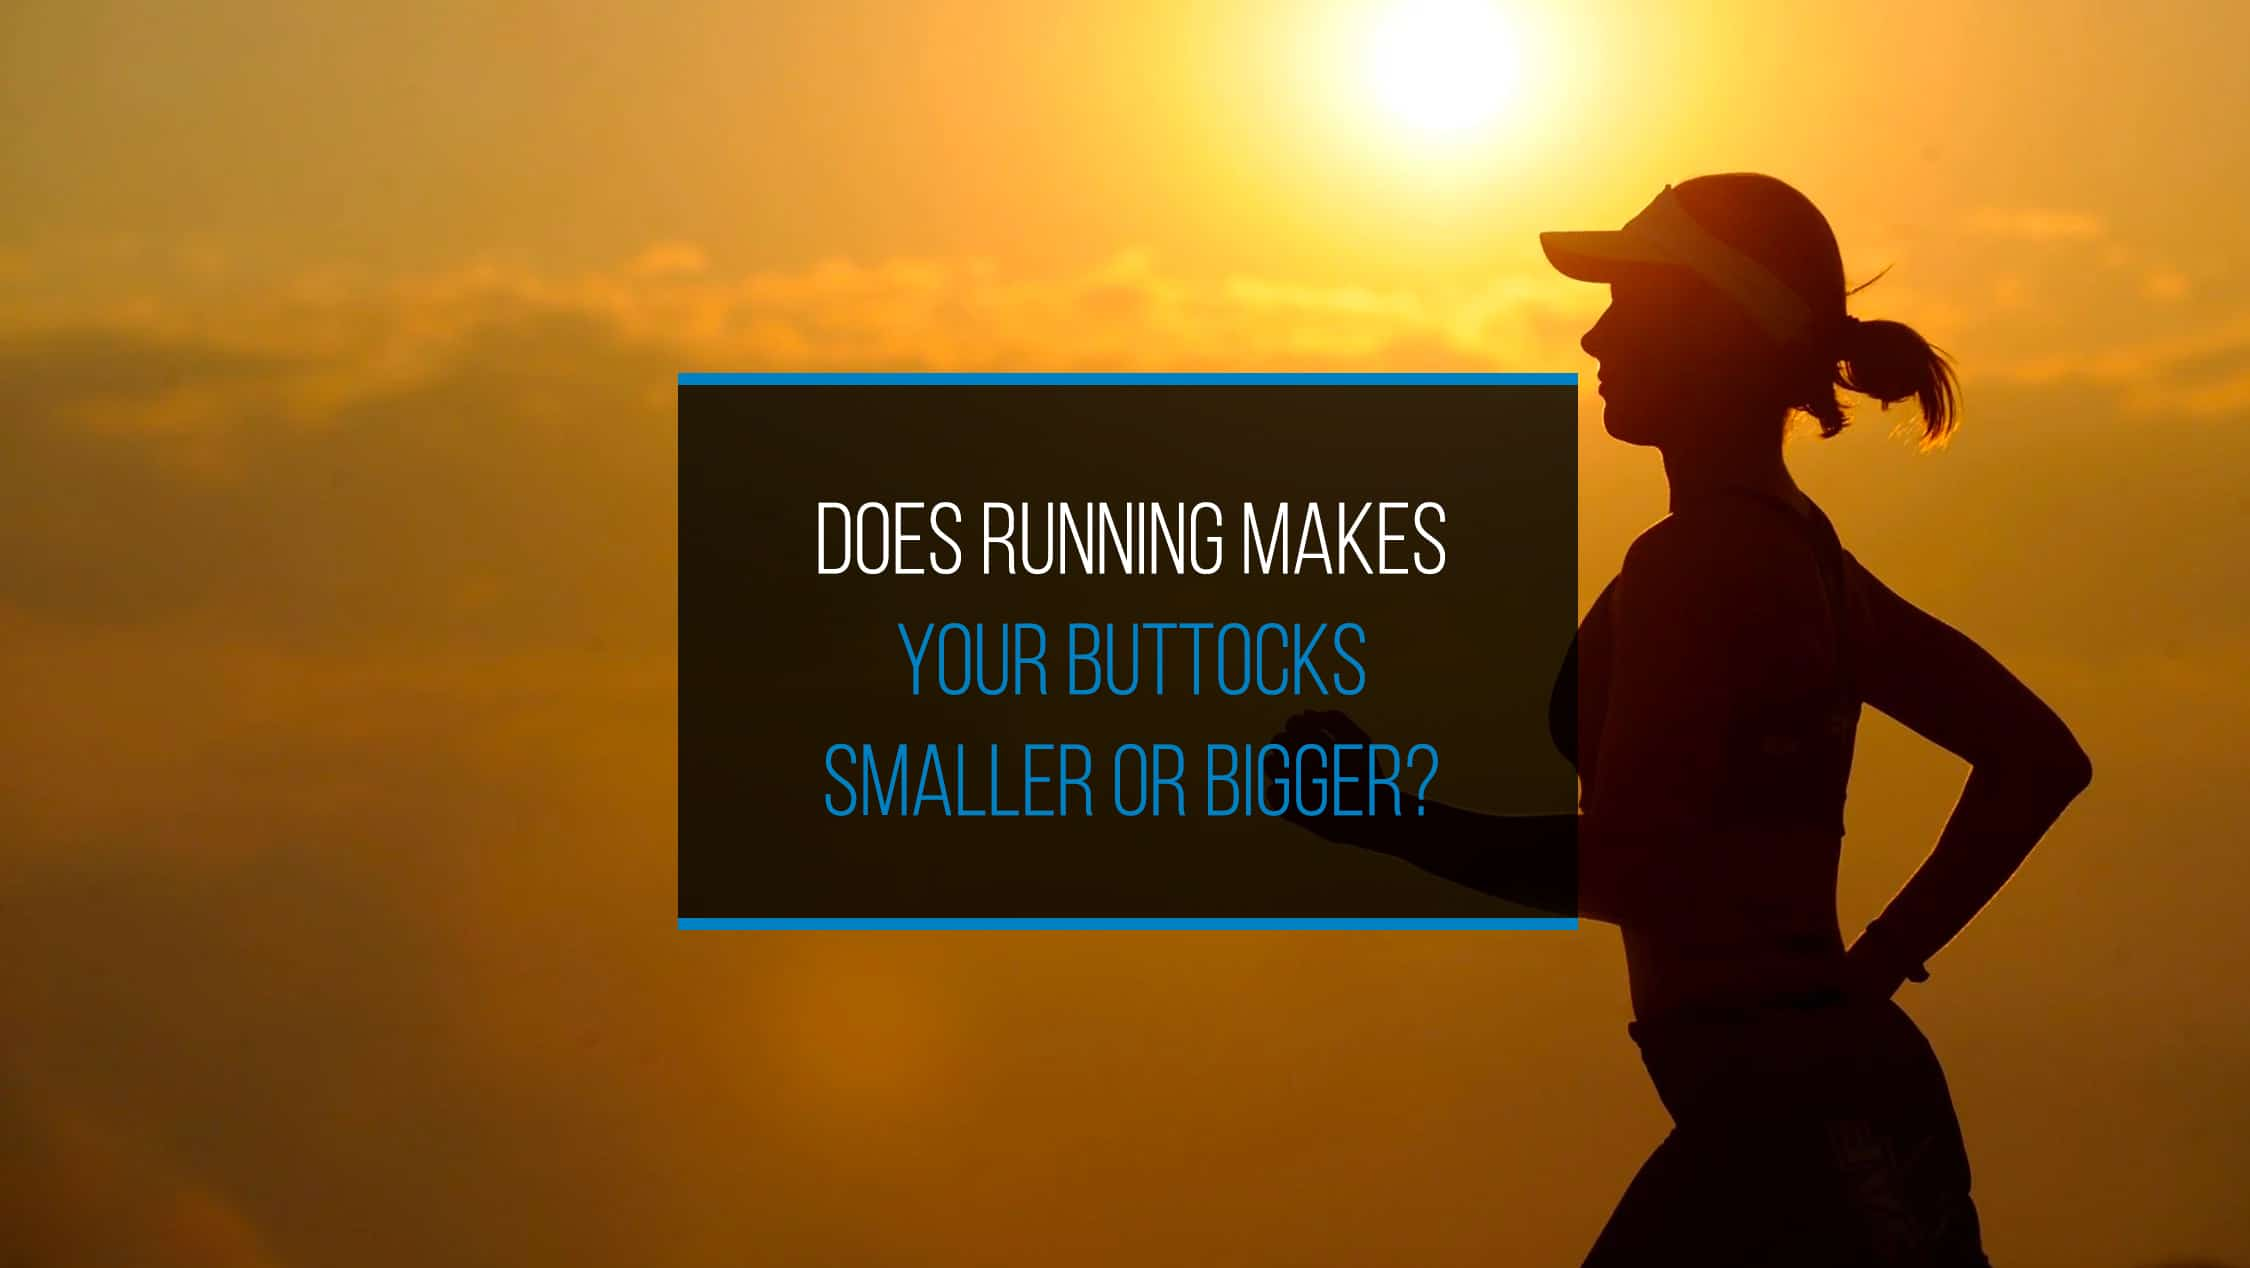 Does Running Make Your Buttocks Bigger or Smaller?